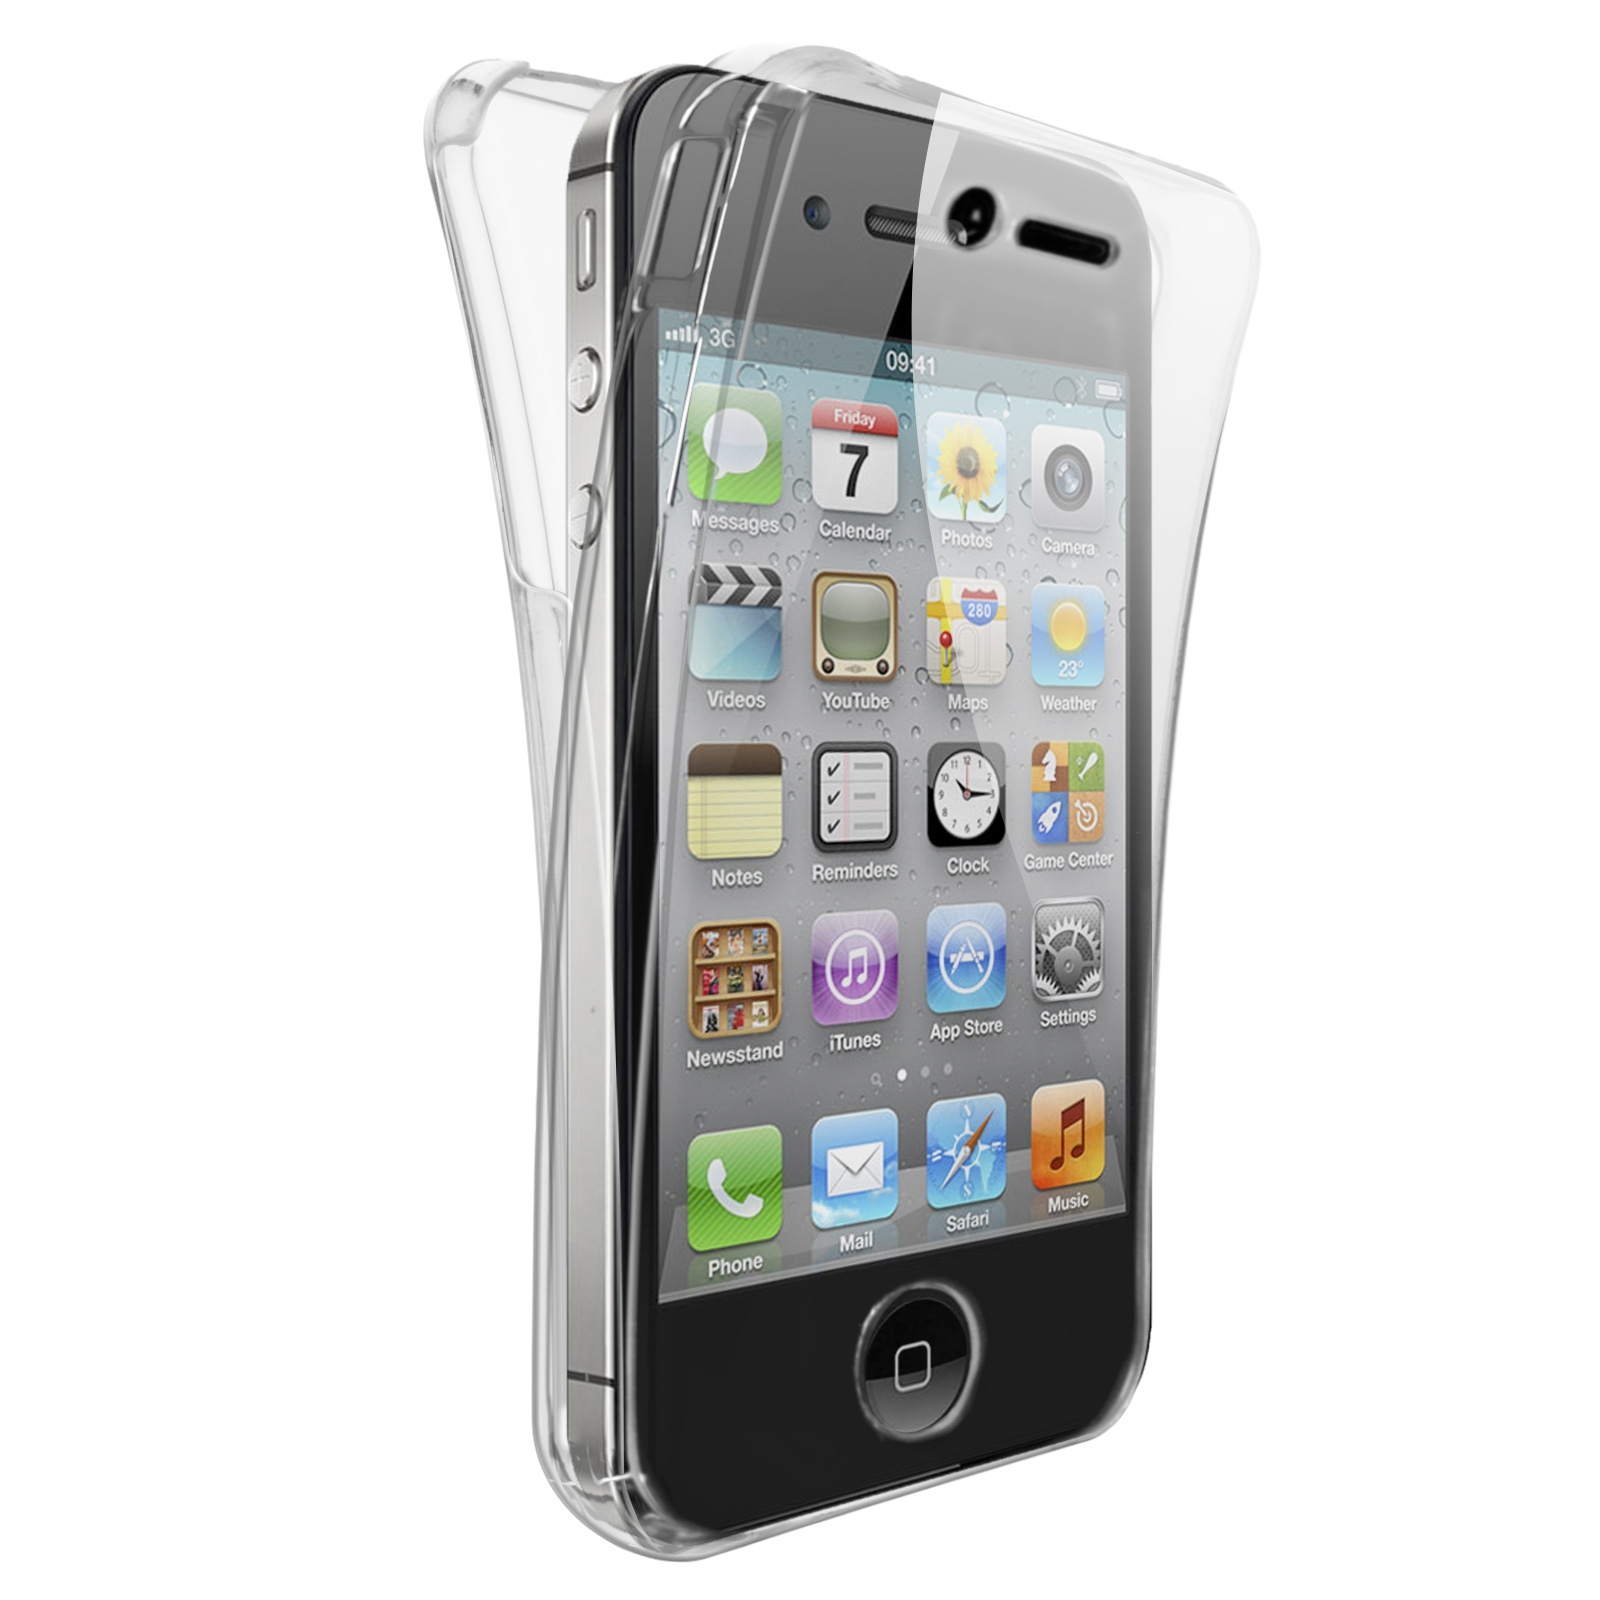 coque apple iphone 4 4s x doria defense 360 transparente. Black Bedroom Furniture Sets. Home Design Ideas